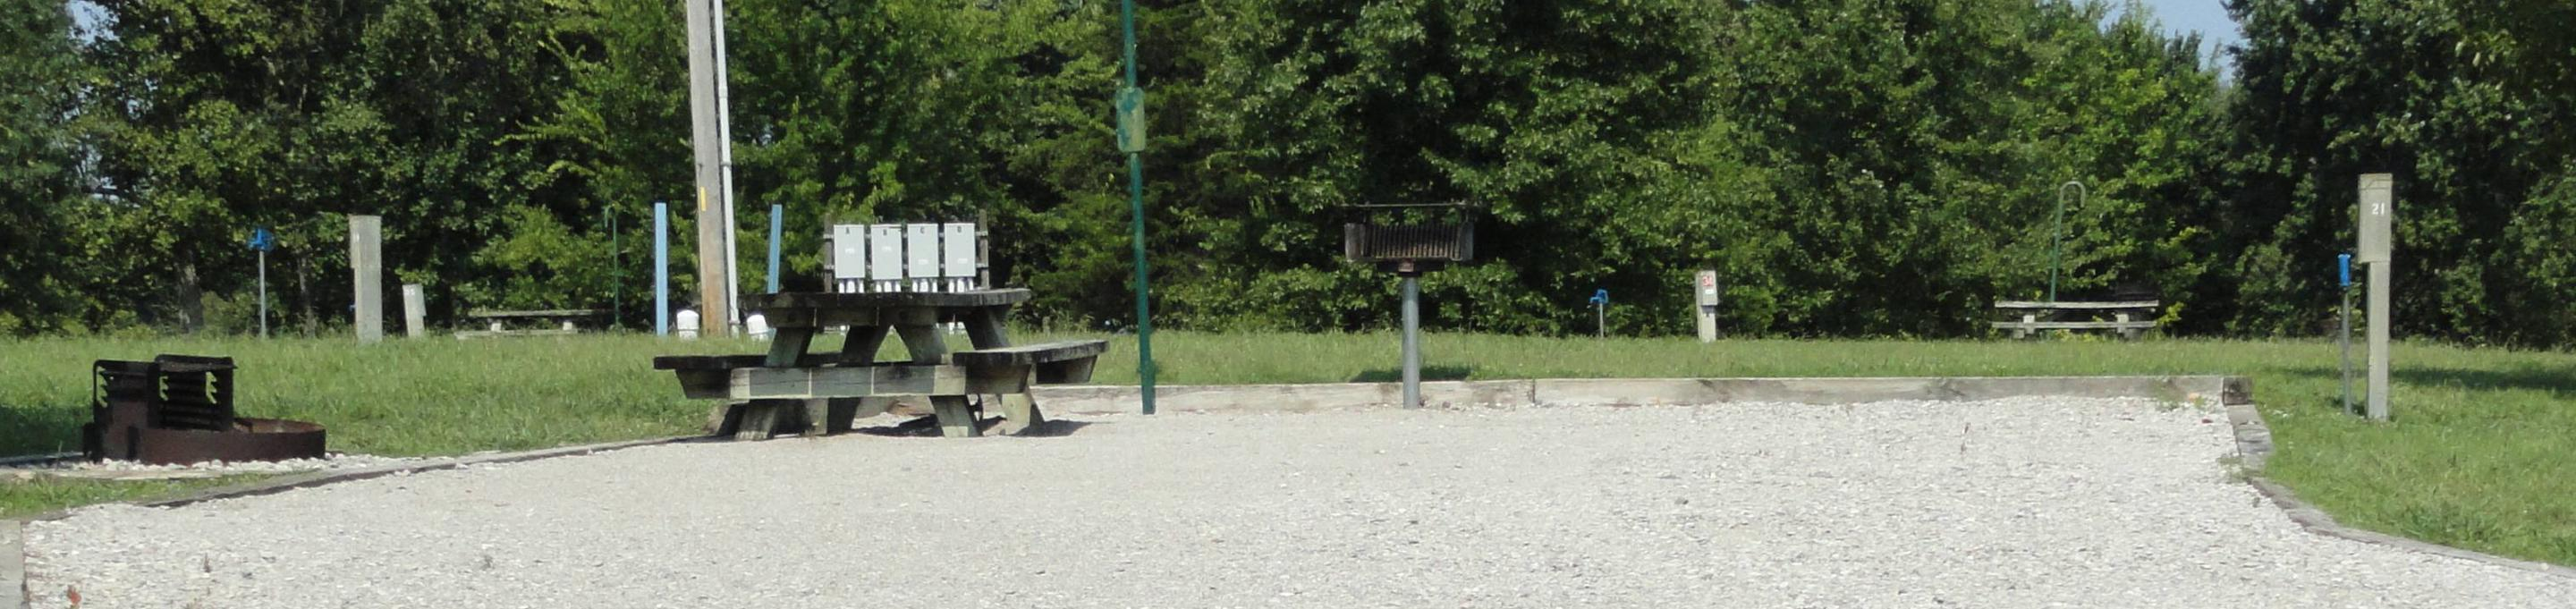 LILLYDALE CAMPGROUND SITE # 21